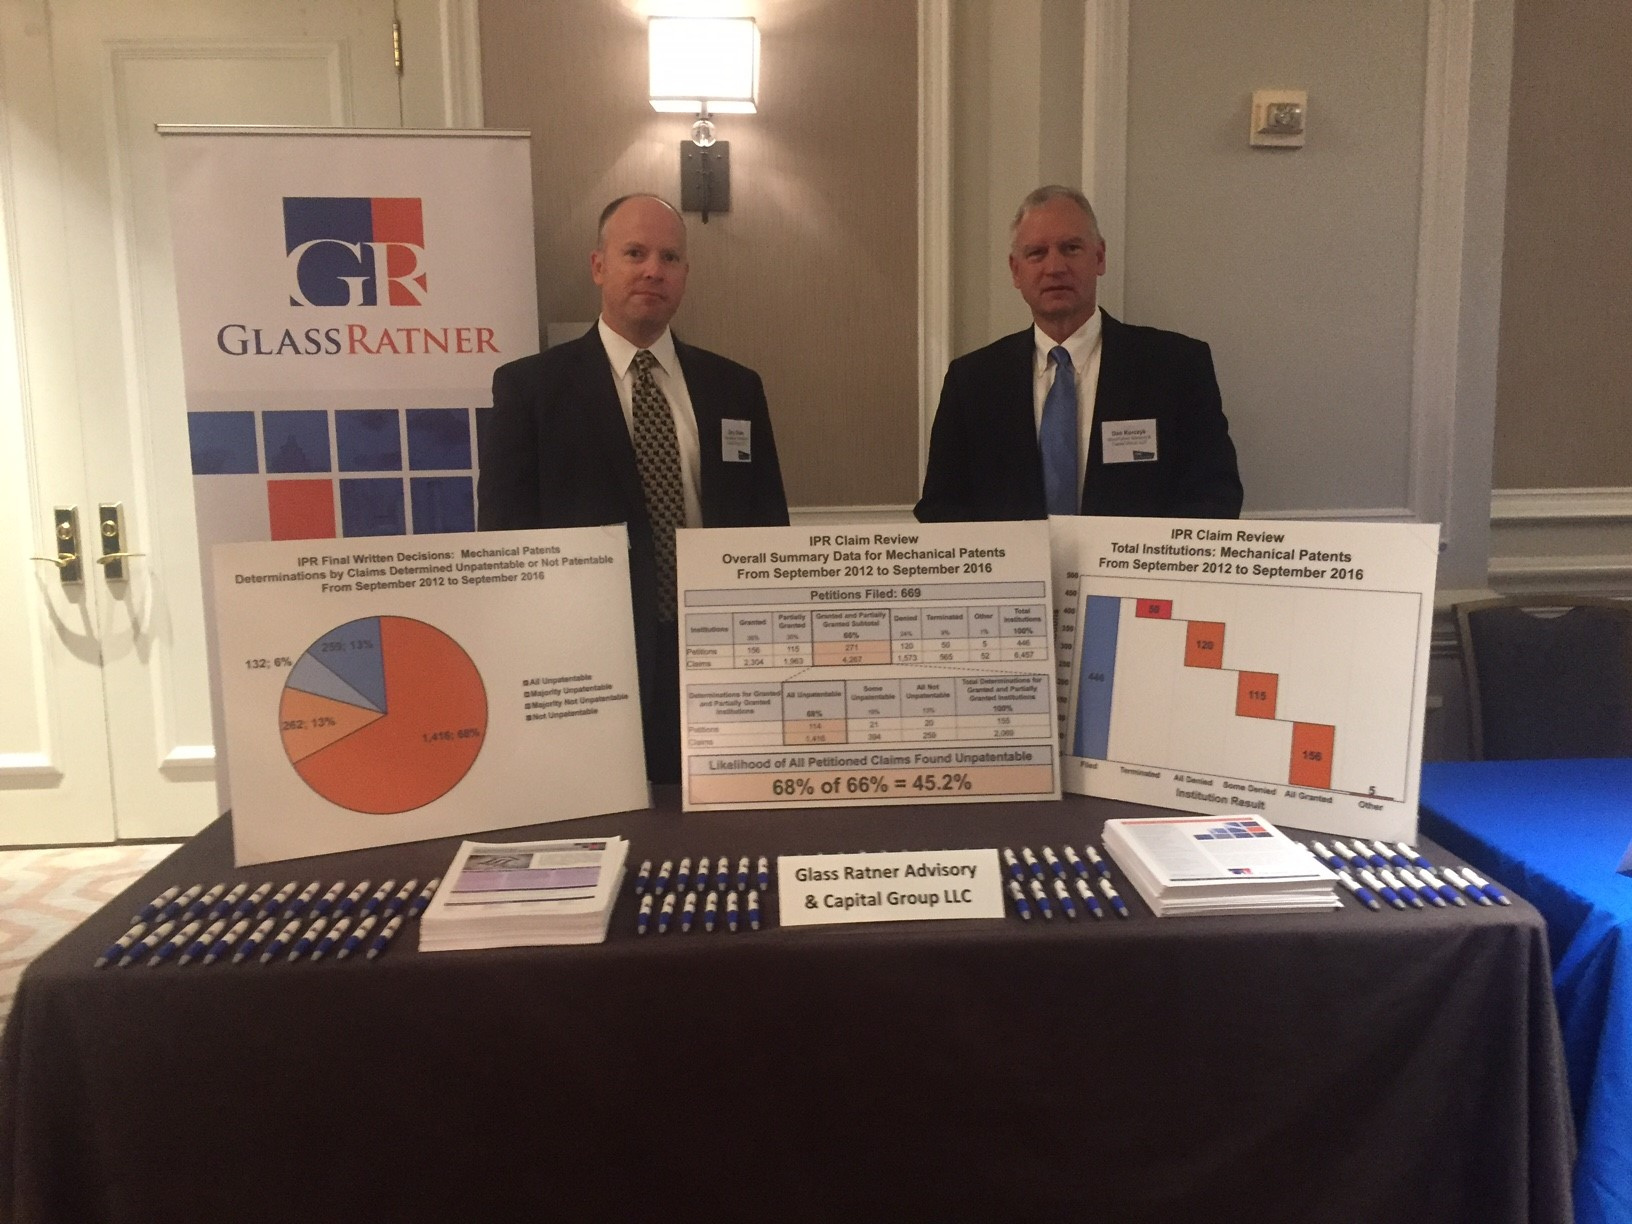 GlassRatner is a Proud Sponsor of the 2017 Patent Trial and Appeal Board Bar Association Inaugural Conference